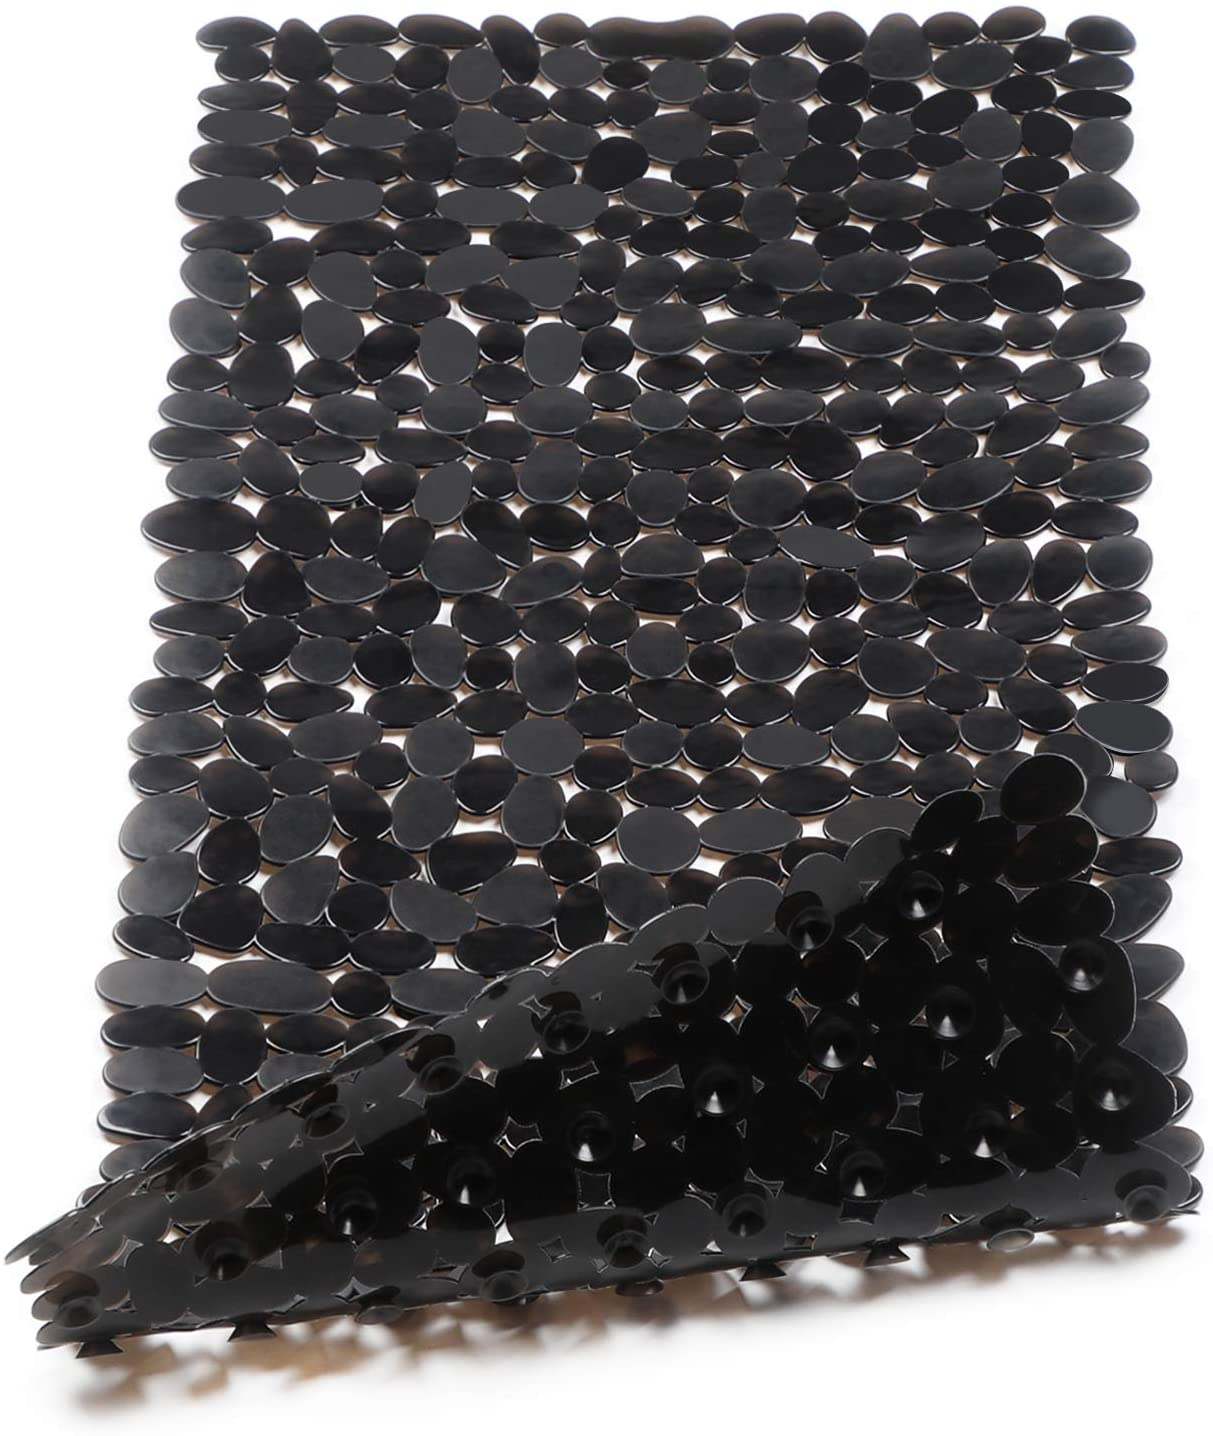 WELTRXE Non Slip Bathtub Mat 35 x 16 Inches Pebbles Shower Mats with Suction Cups, Drain Holes for Bathroom Showers, Tub, Machine Washable Bathroom Mats BPA, Latex Free Safe Tub Mats - Black